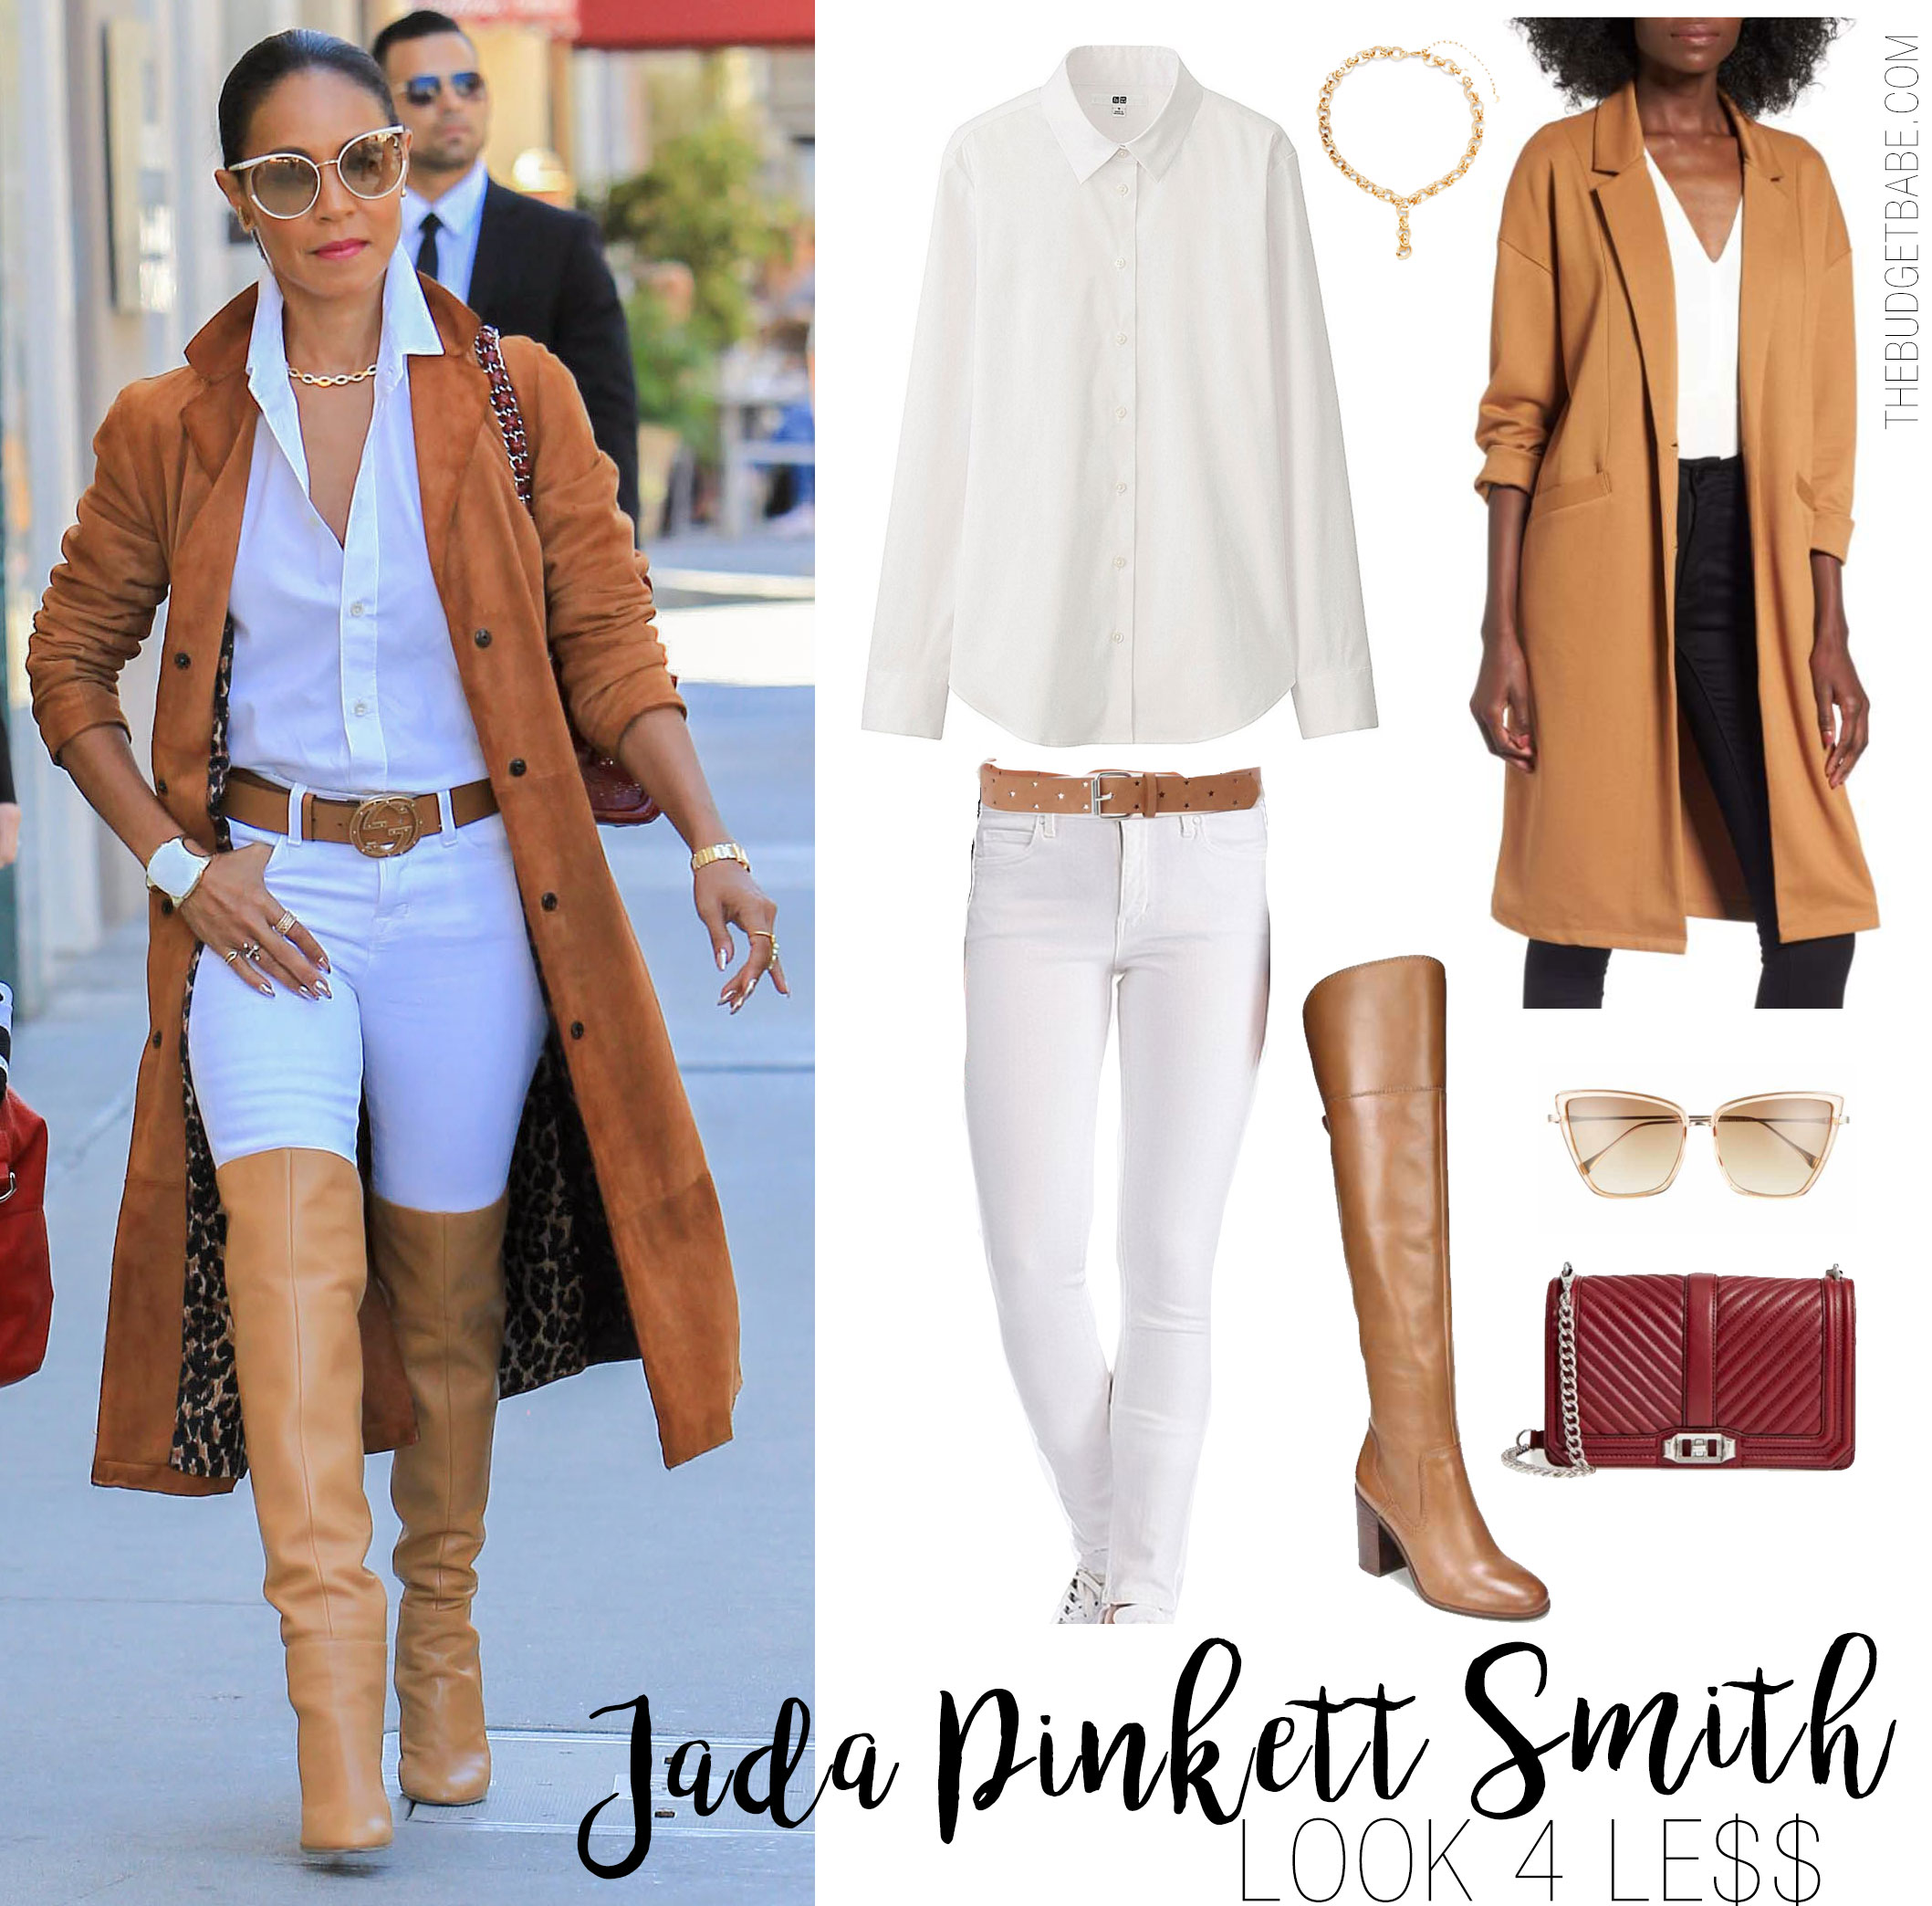 3cb62236e3403 Jada Pinkett Smith wears a camel suede trench coat with a white button-down  shirt